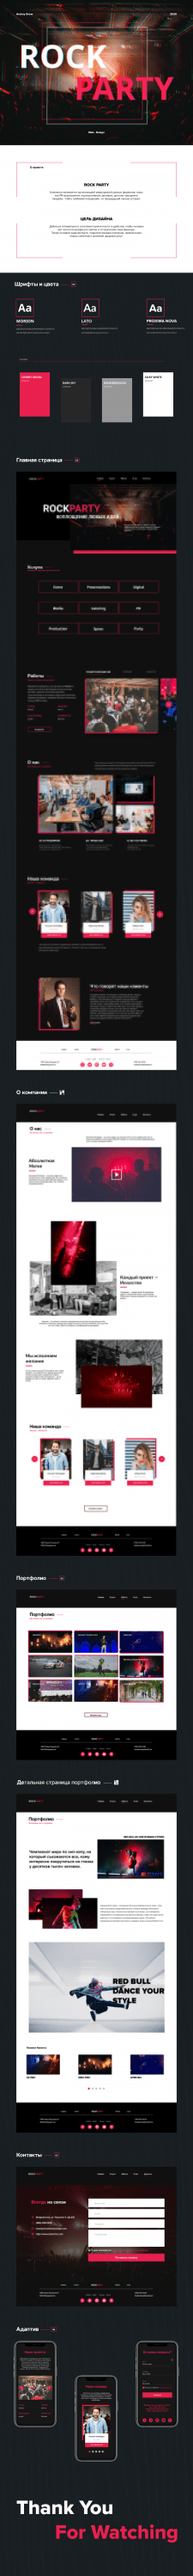 ROCK PARTY. Redesign website.